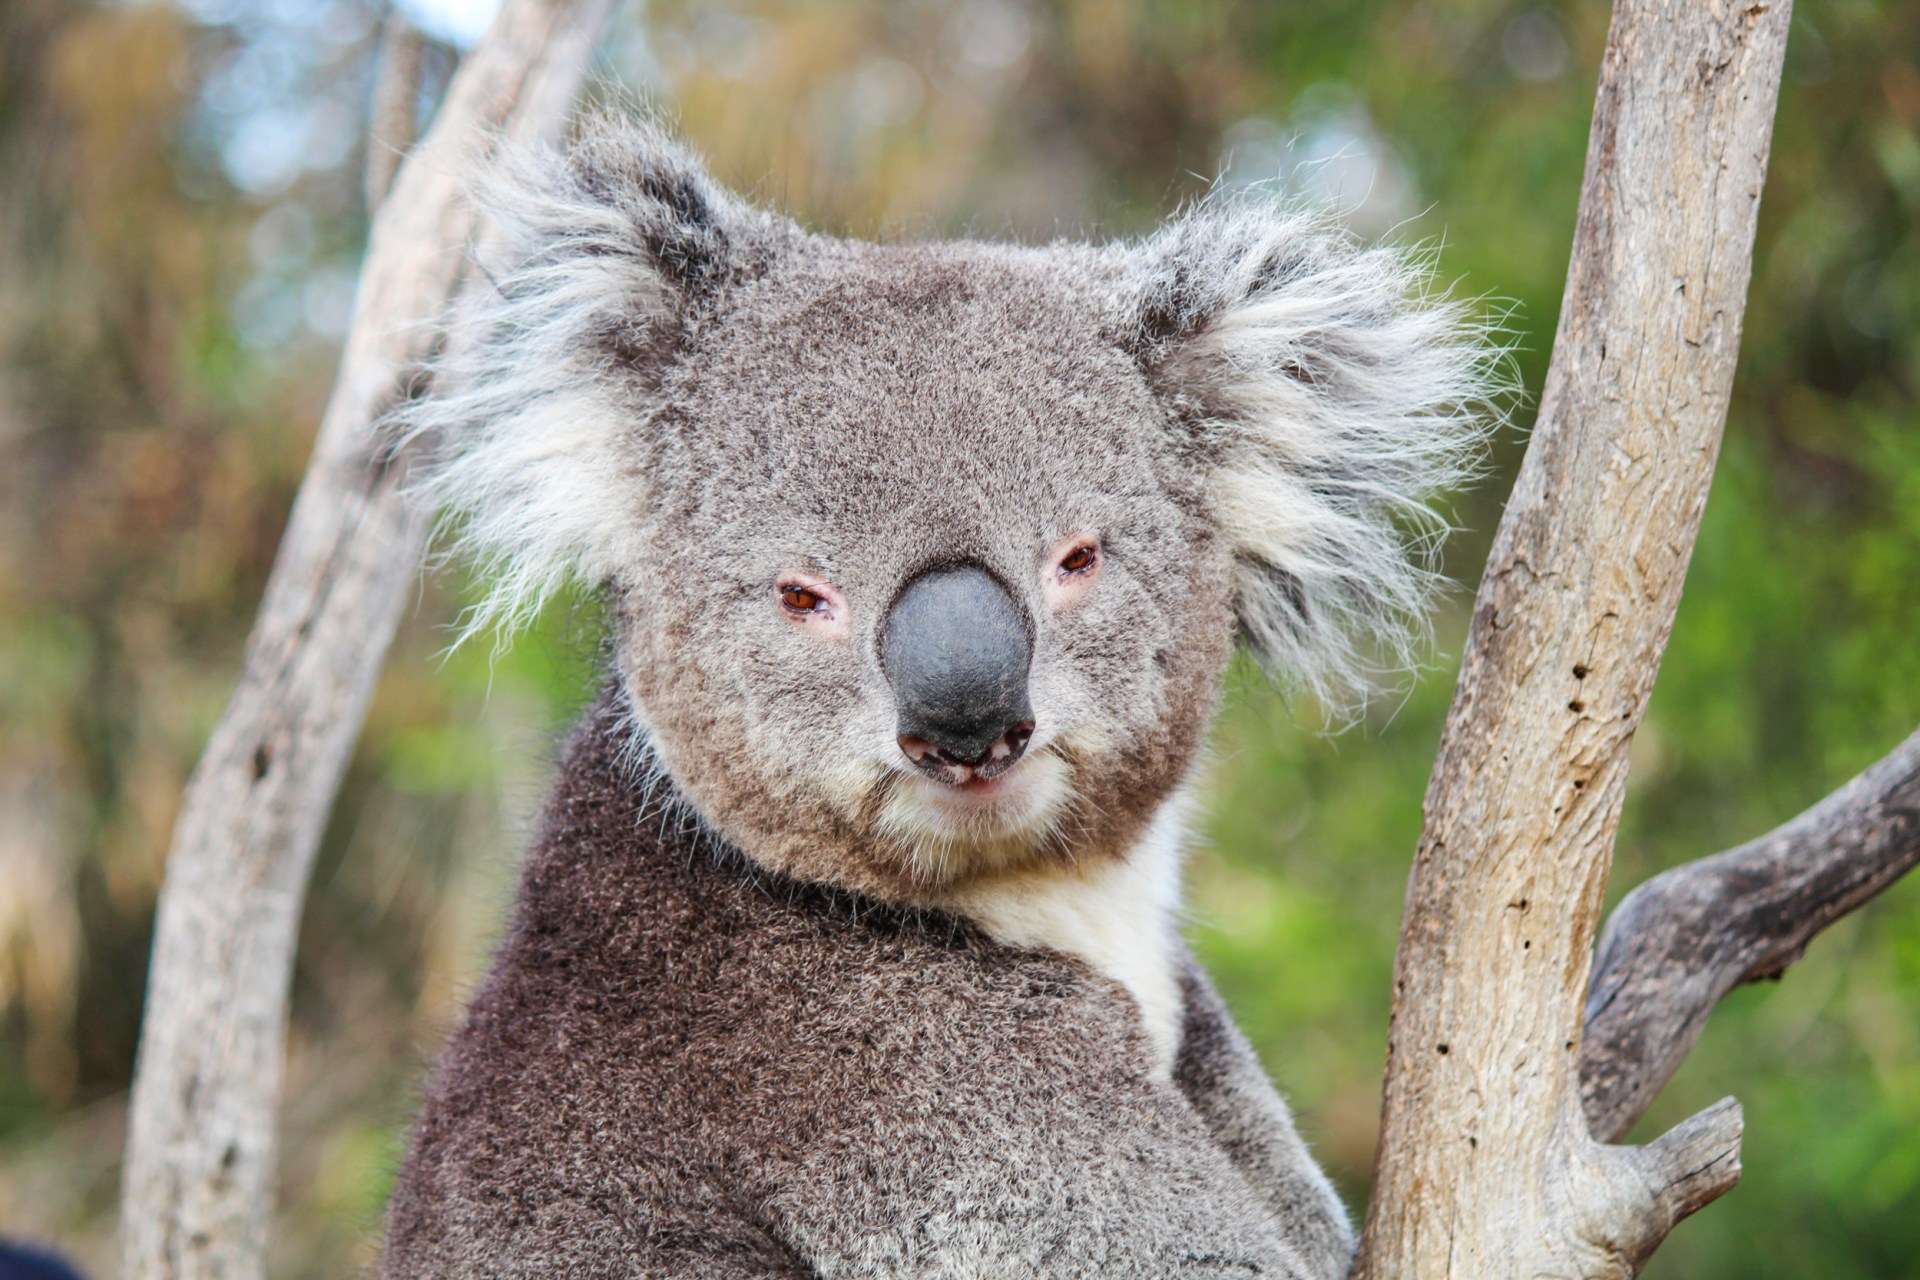 Koala at Bonorong Wildlife Sanctuary, Tasmania